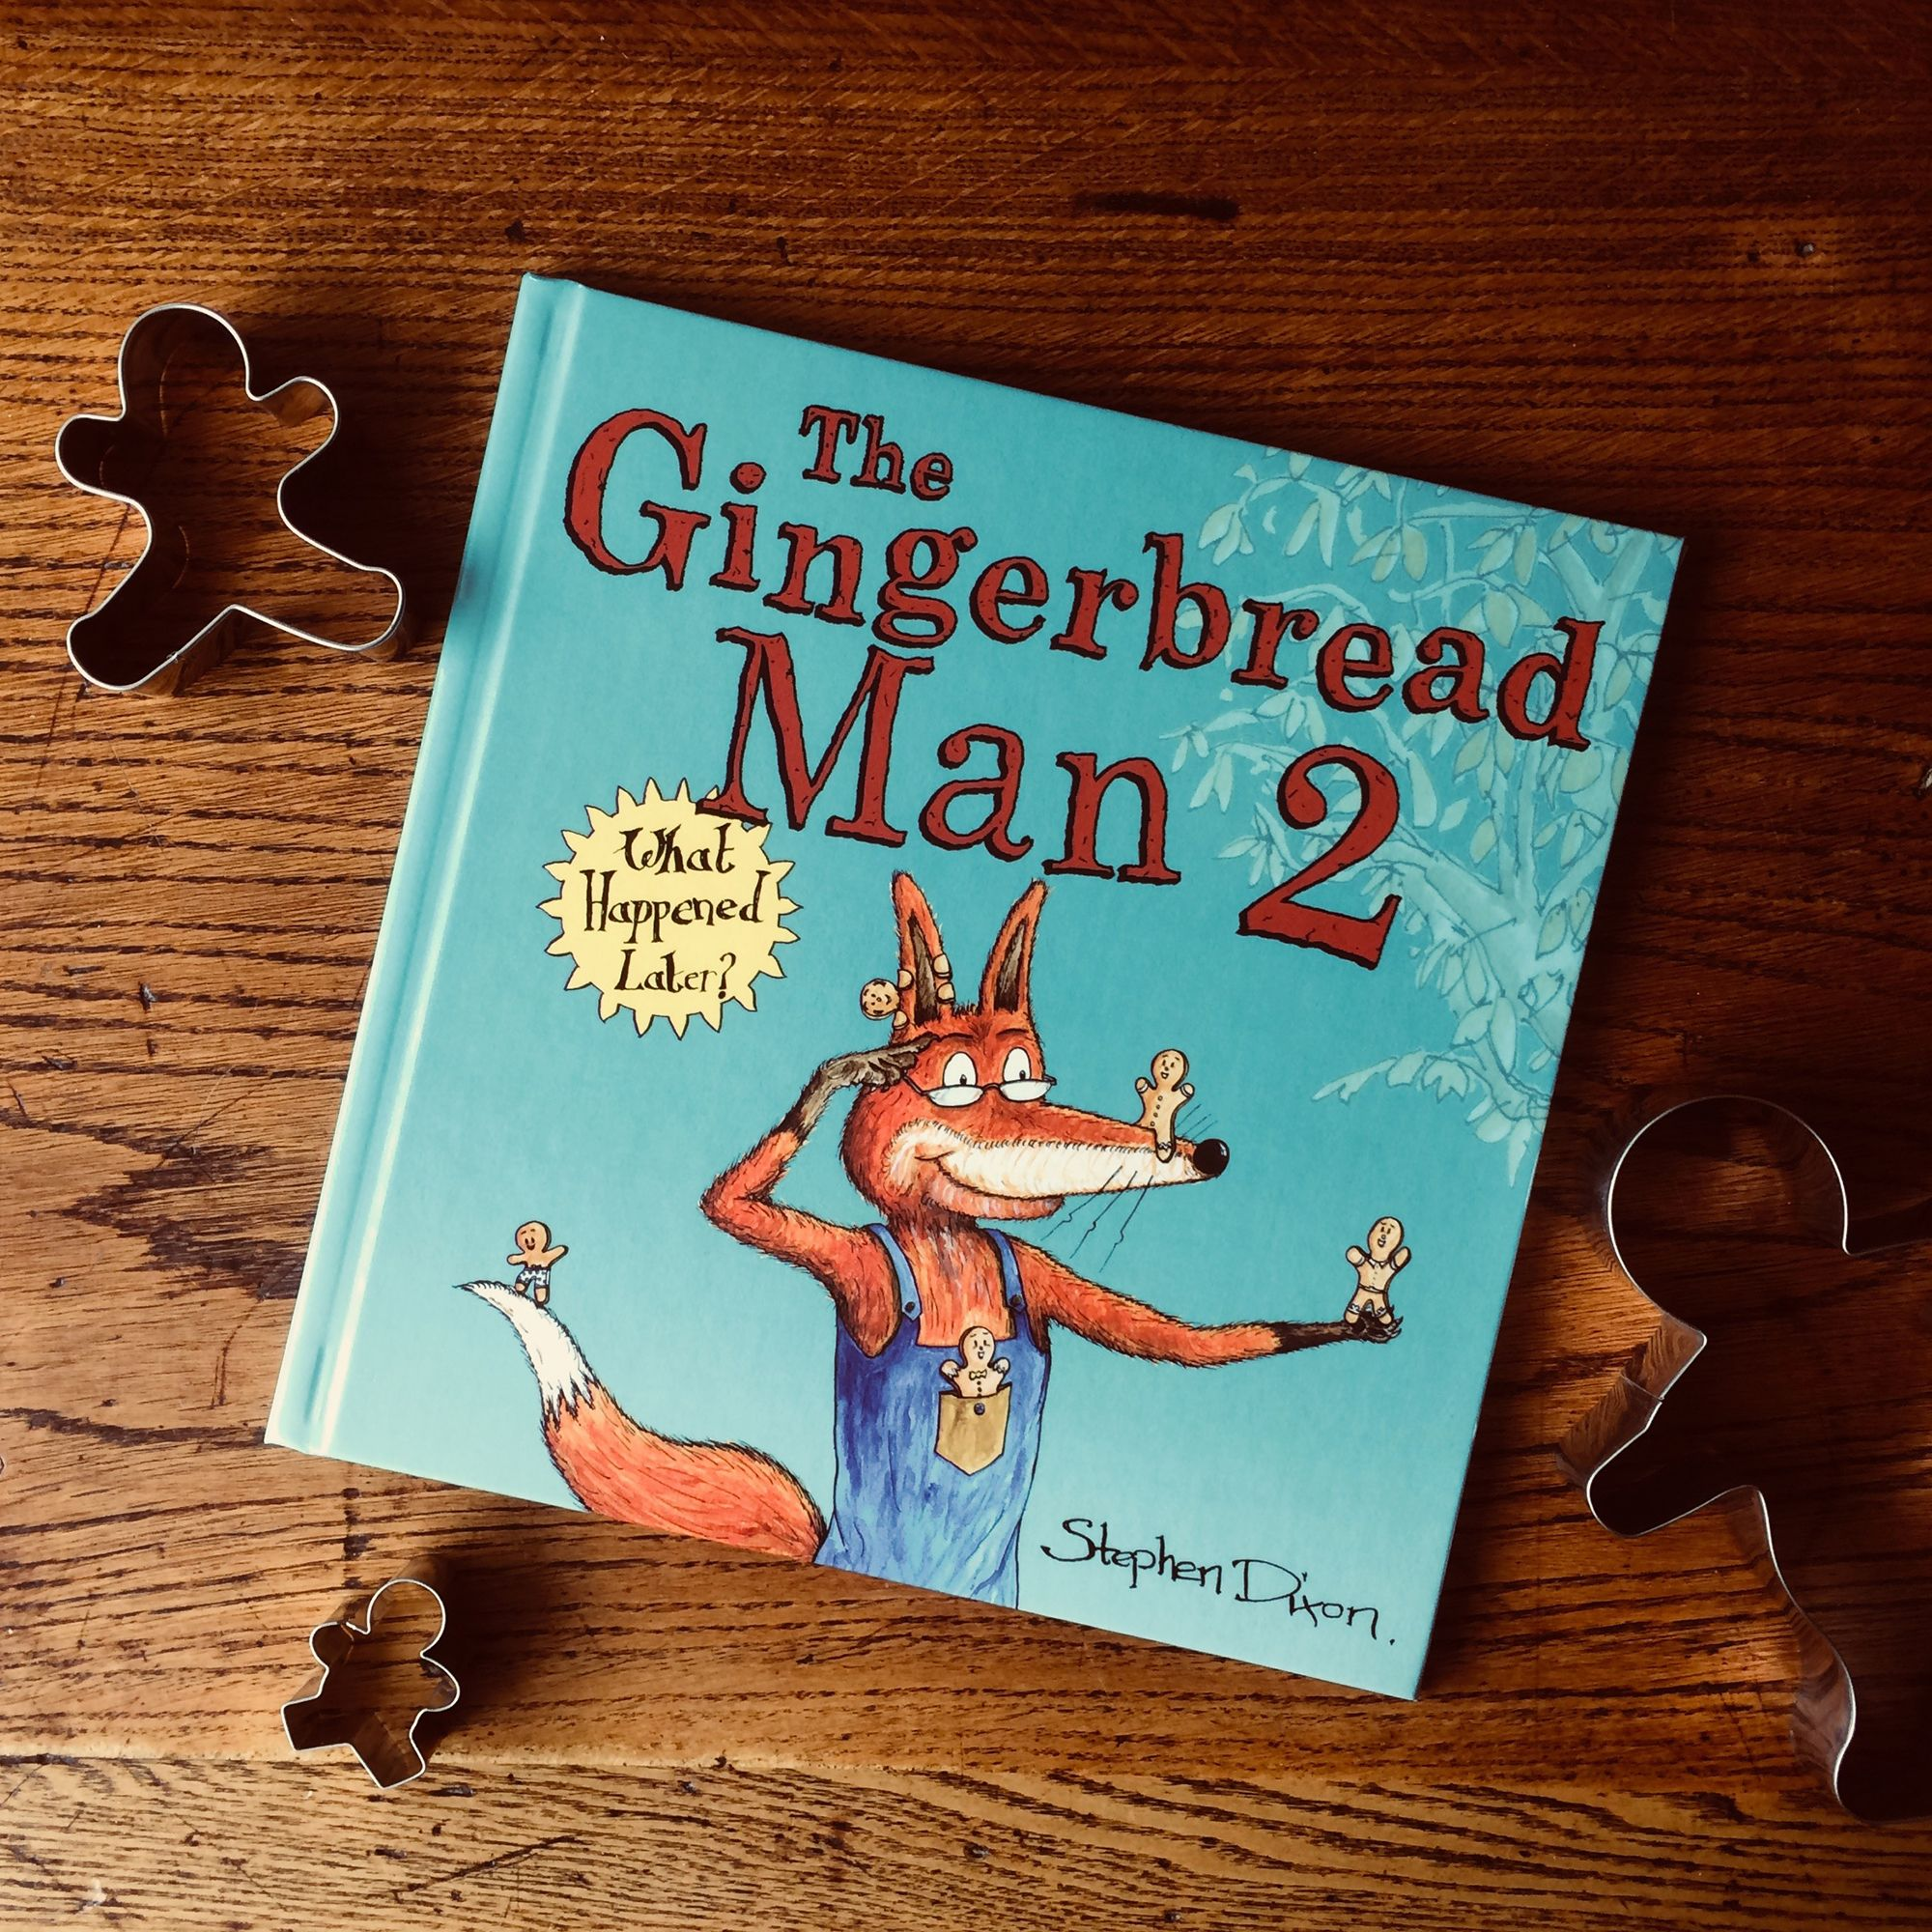 The Gingerbread Man 2 Is A Fun Rhyming Sequel To The